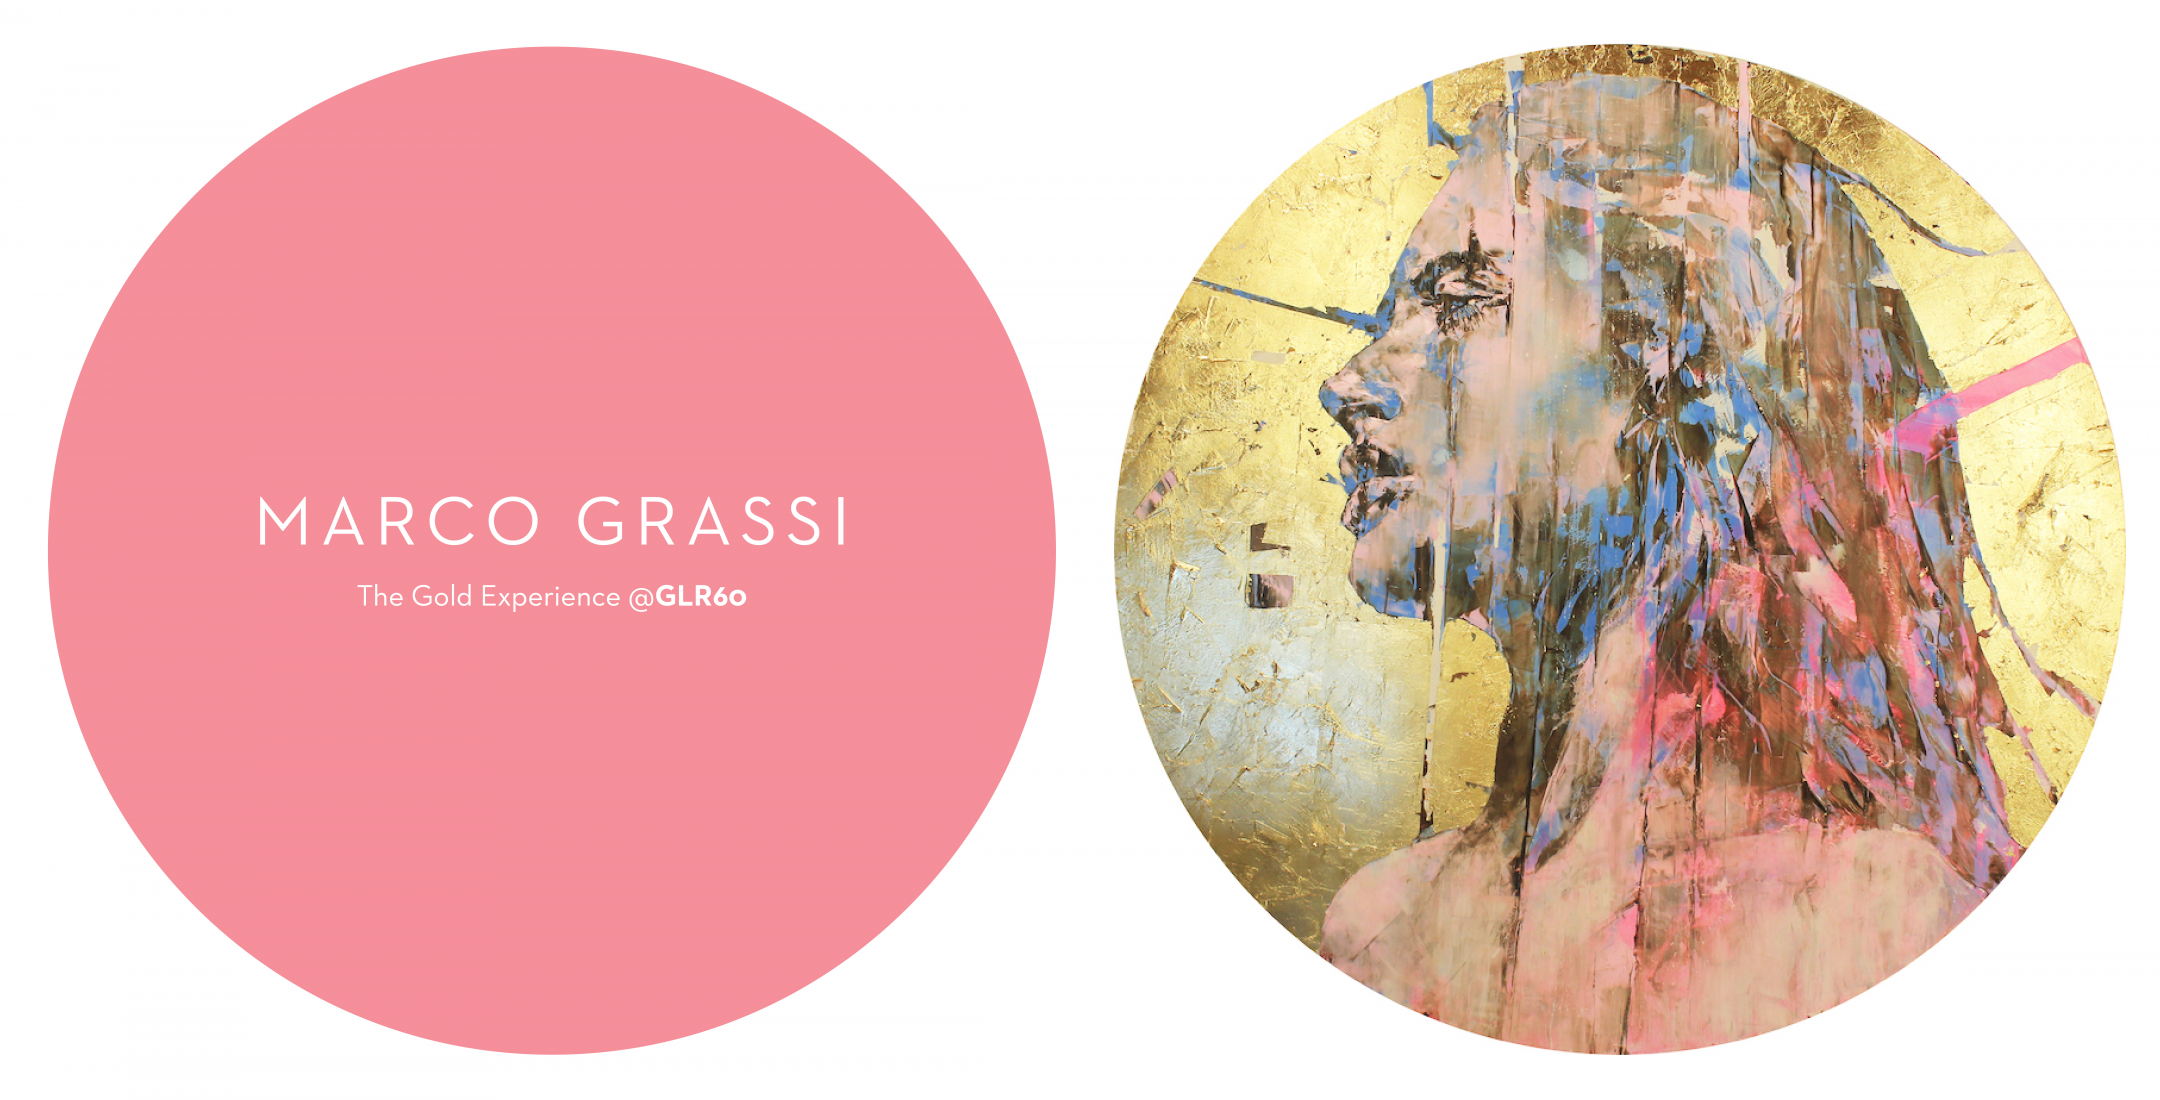 MARCO GRASSI | The Gold Experience @GLR60